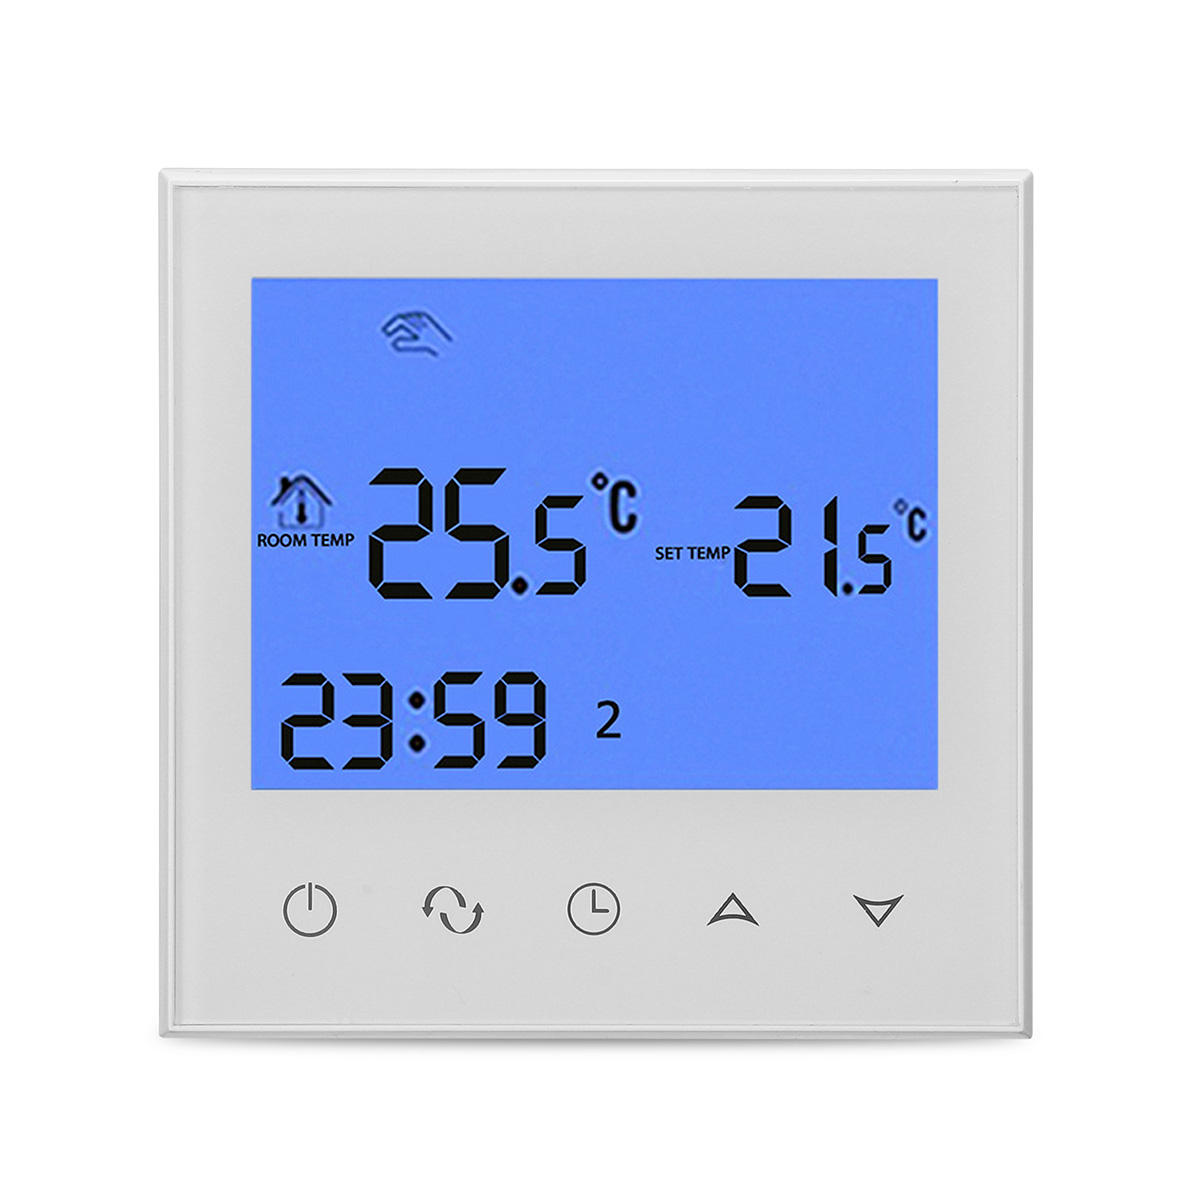 Heating Thermostat Programmable Wireles Wifi Digital Lcd Heating Thermostat Phone App Control